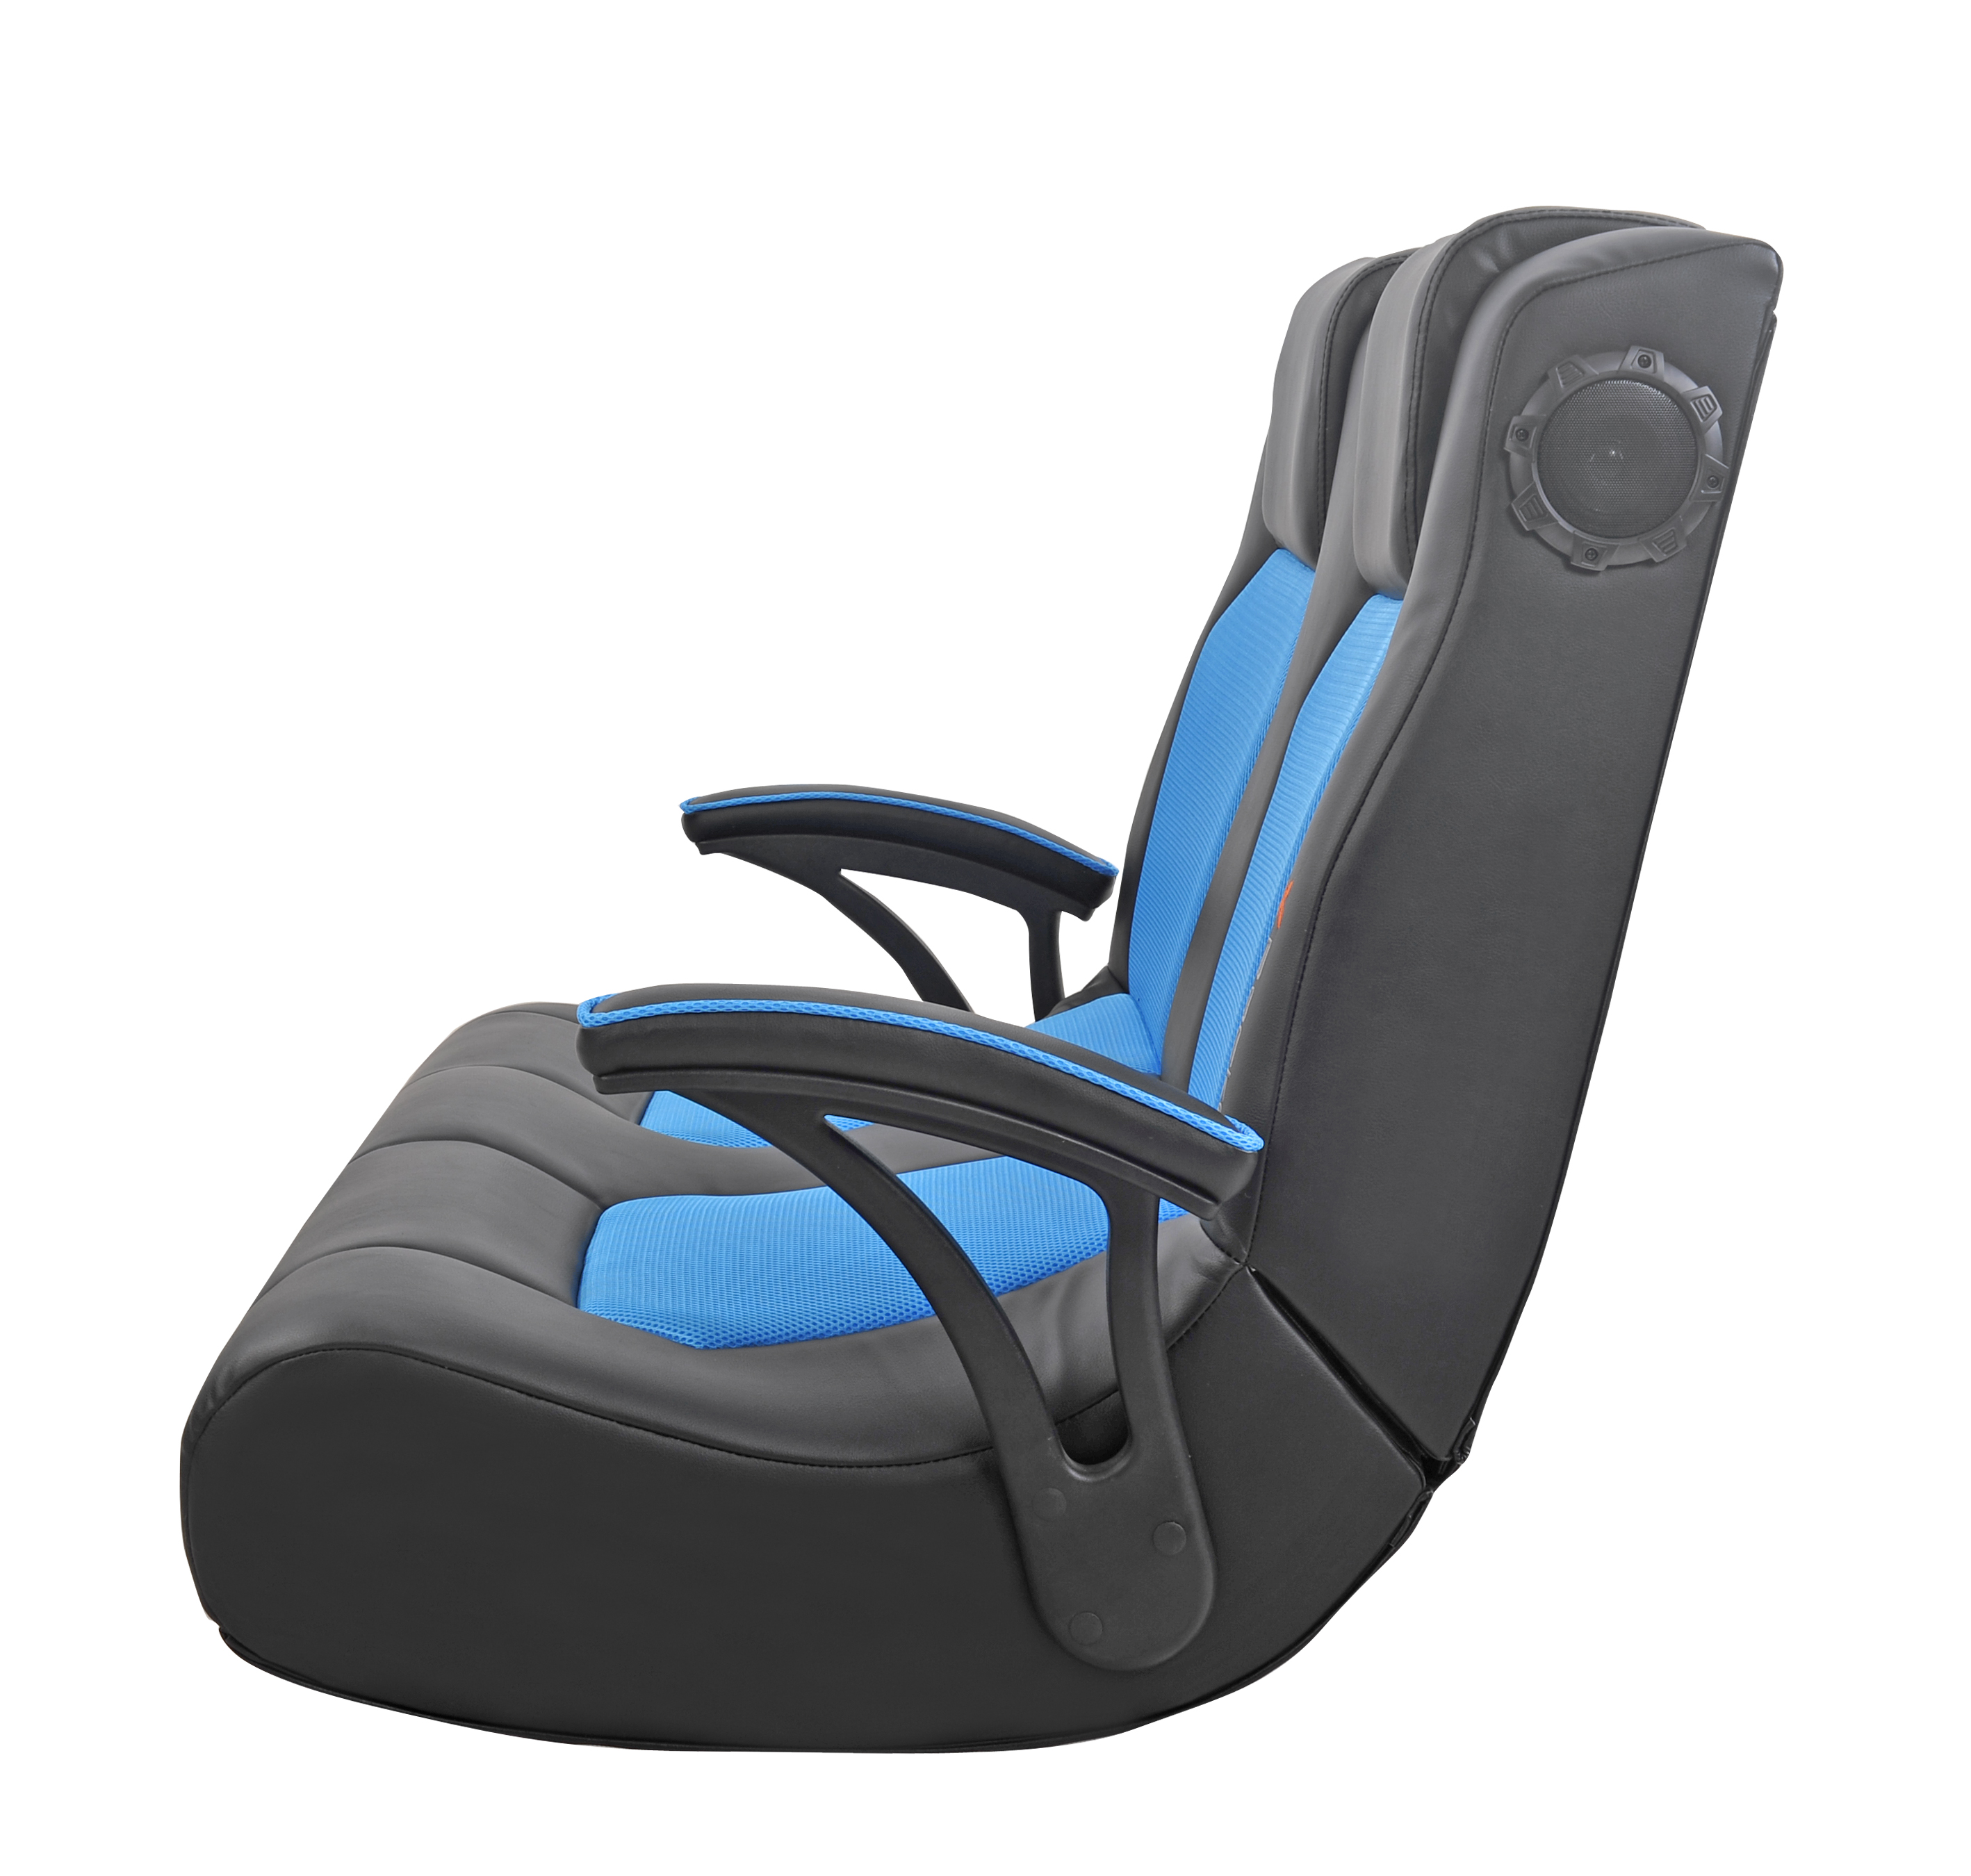 gaming chair on sale slip covered chairs ergonomic x rocker dual commander 2 1 audio